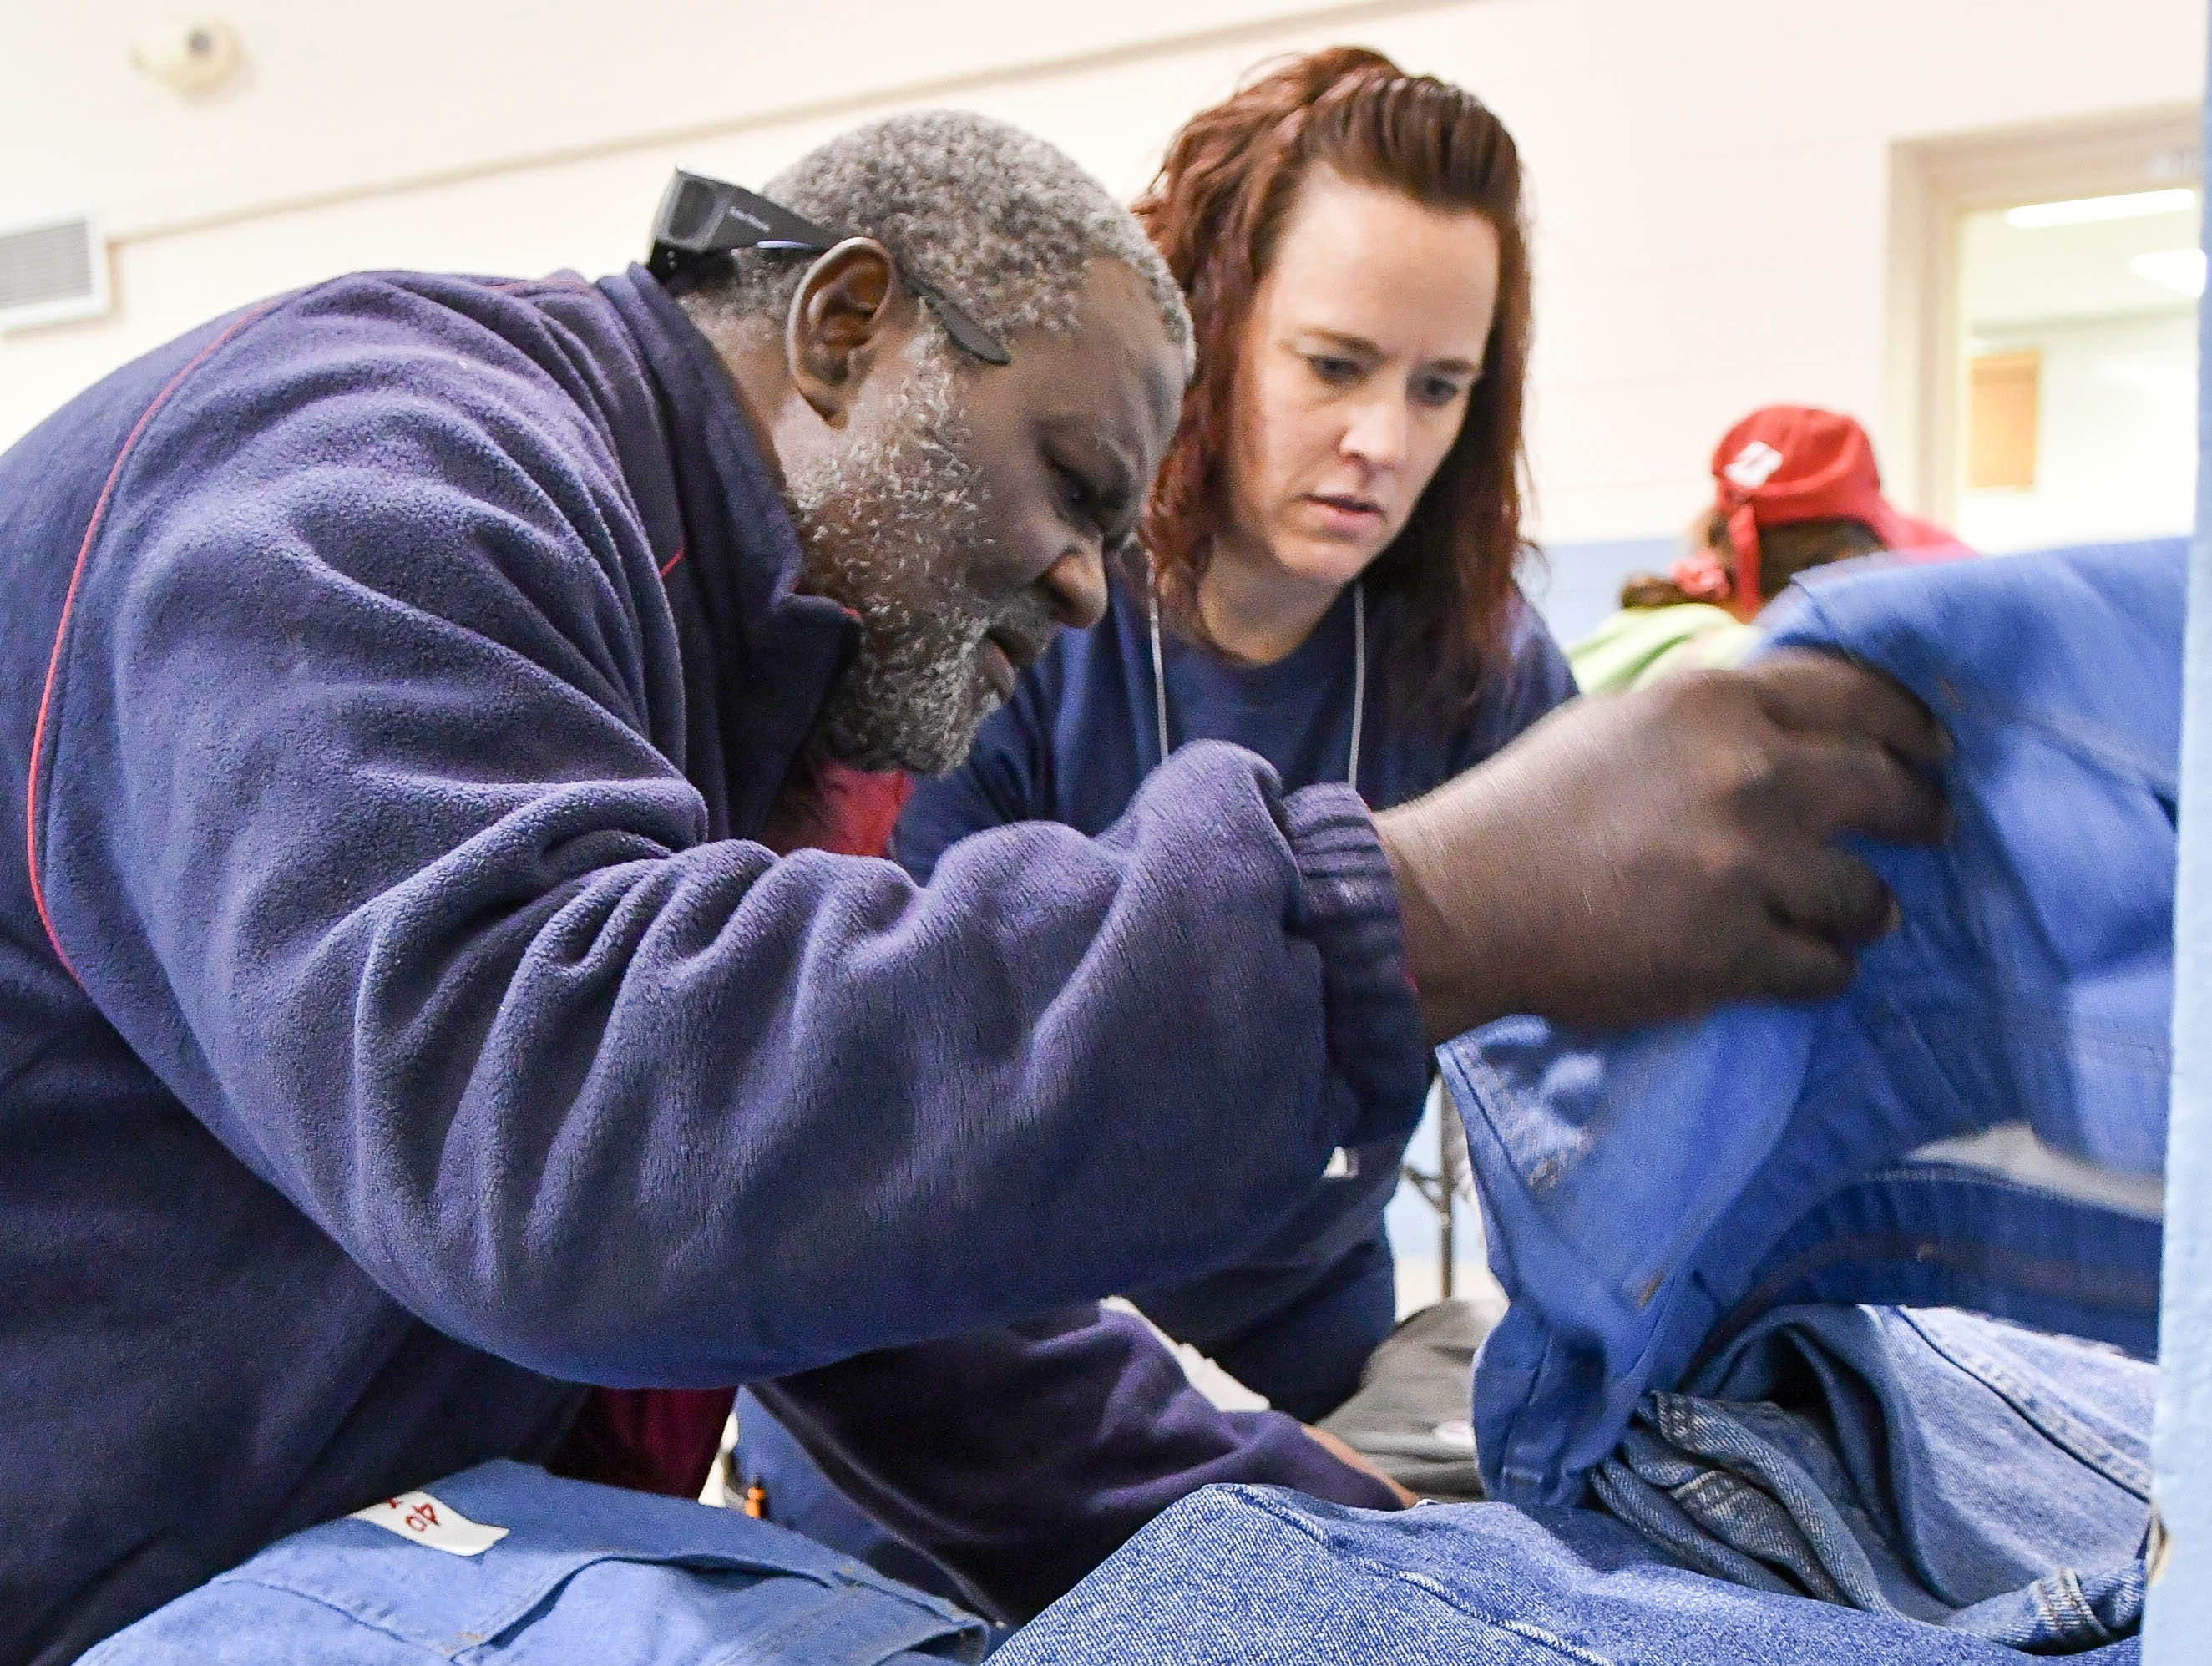 Heather Skinner helps Kenneth Harvey find a pair of jeans in this size during Saturday's Stand Down for Veterans at Cocoa Armory.